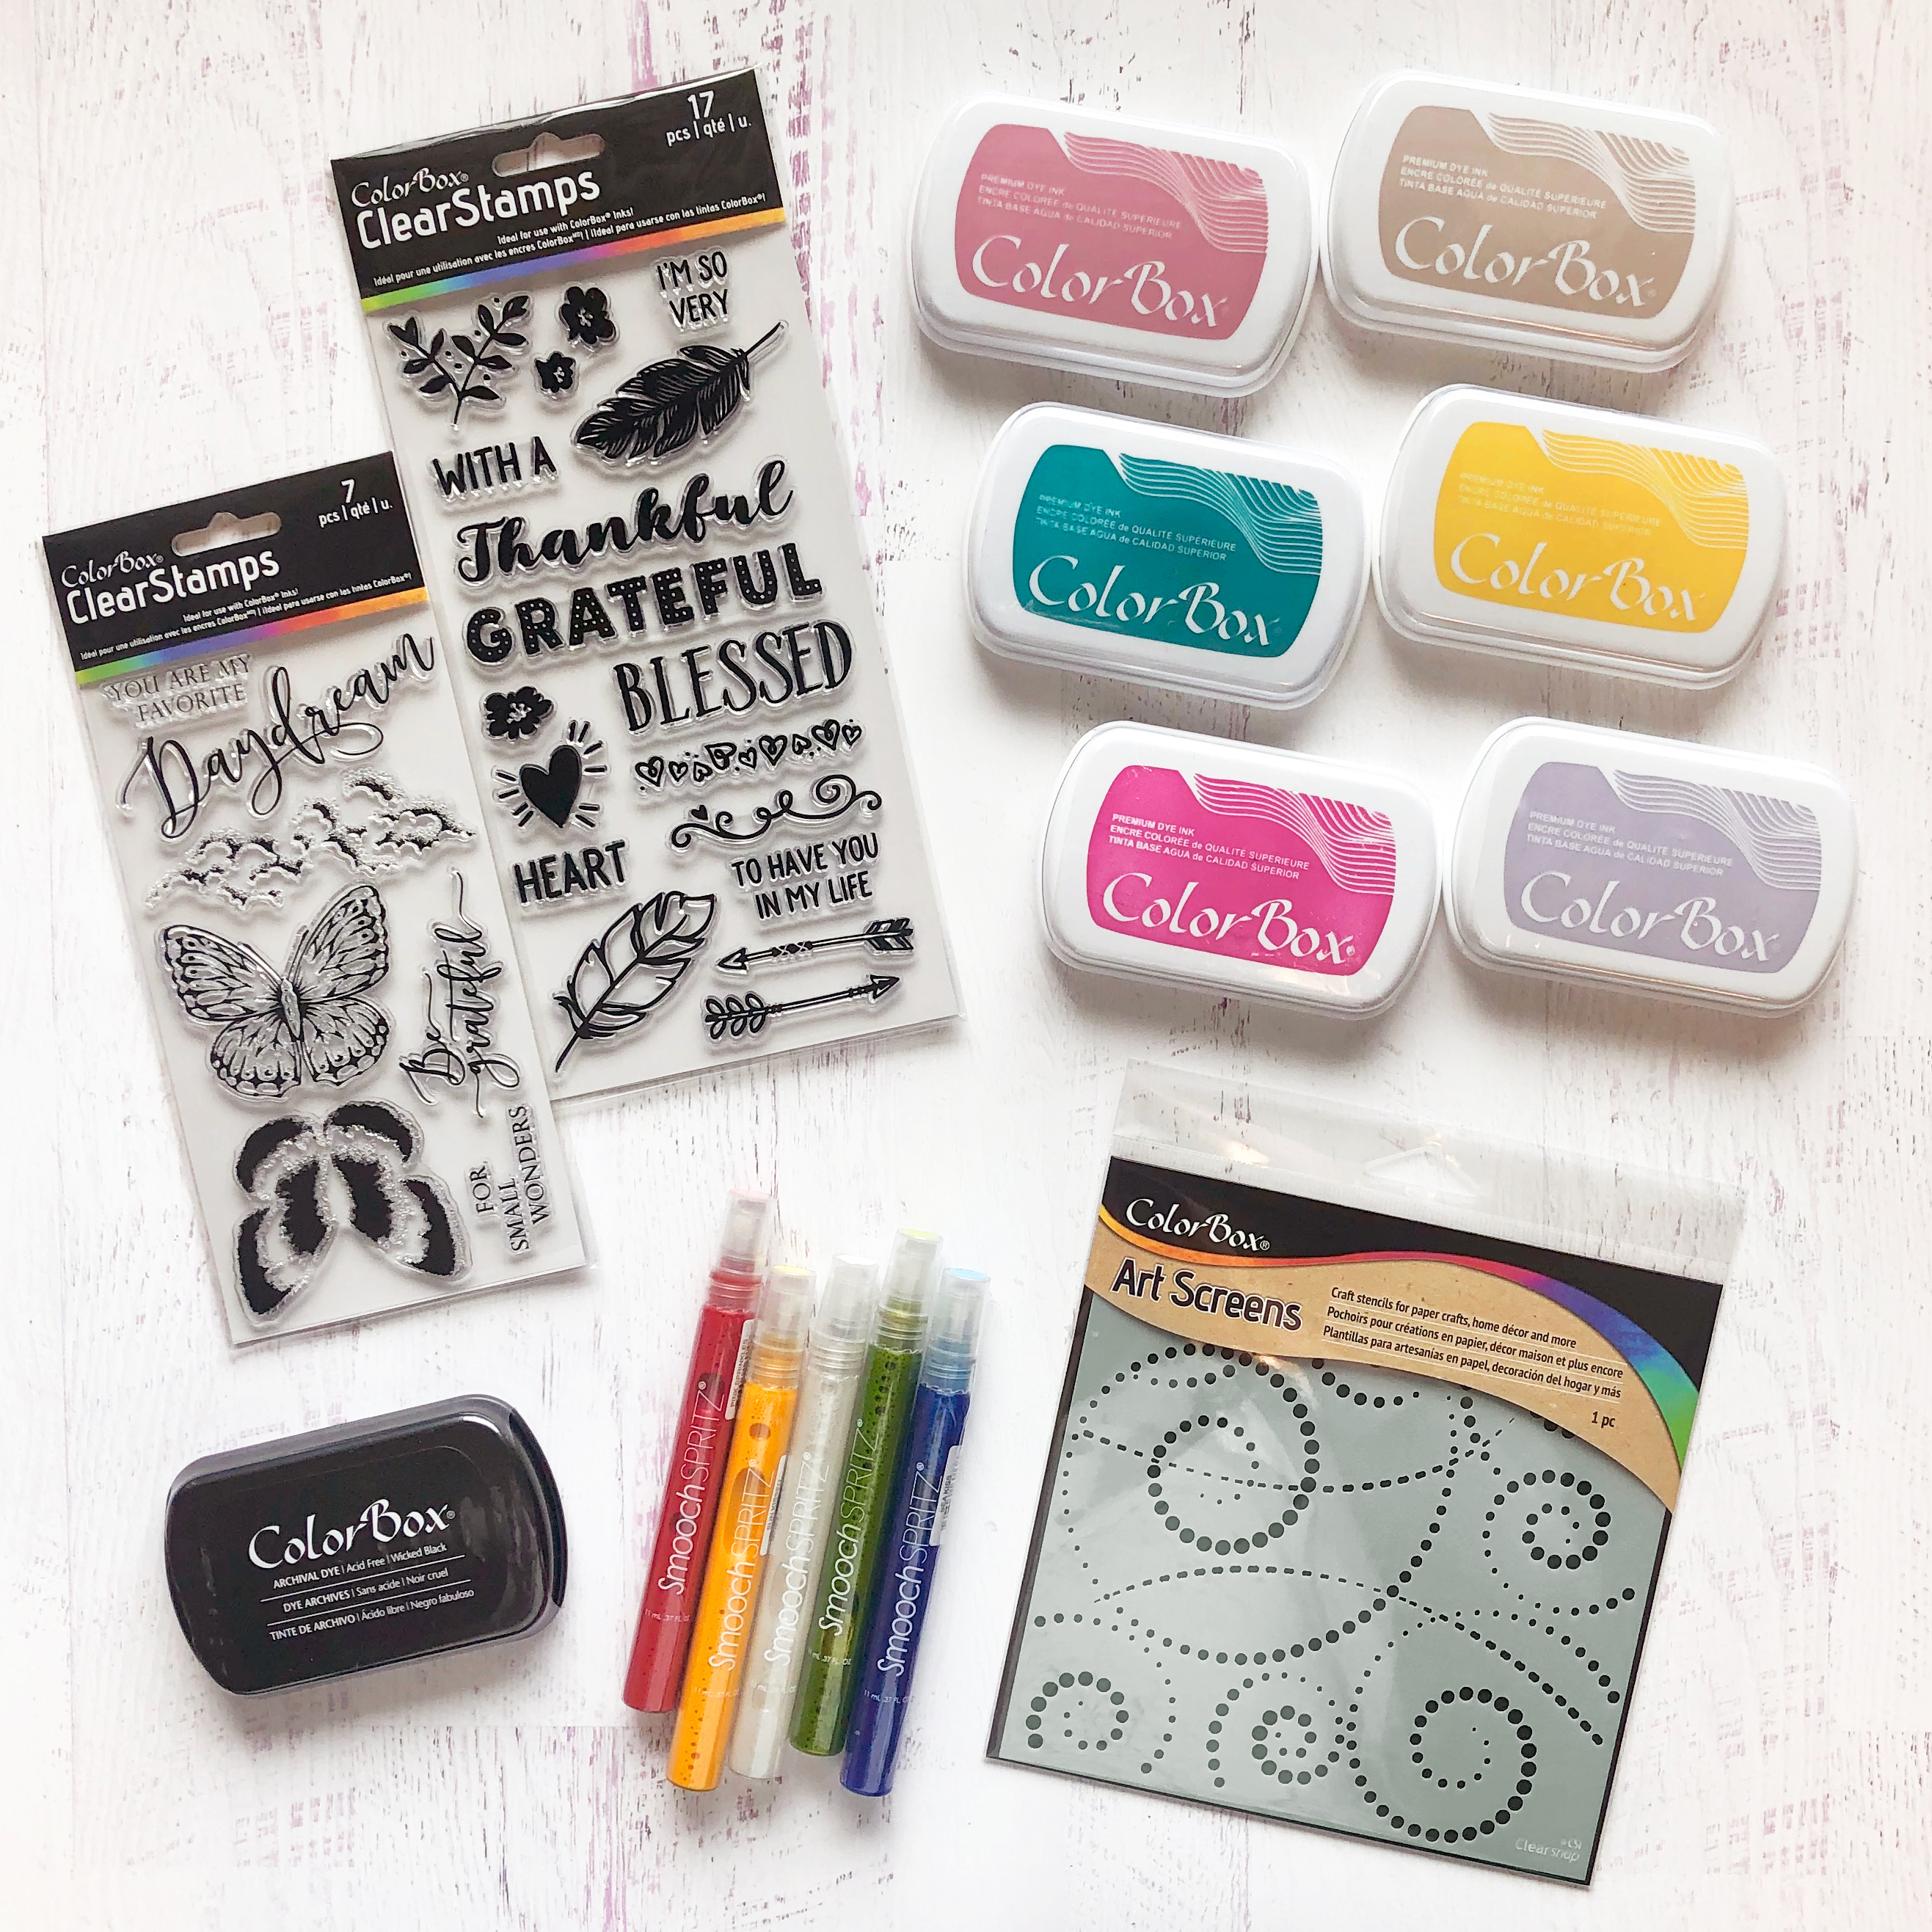 Paper Crafting prize package filled with ink stencils, ink spray and stamps from Clearsnap ColorBox